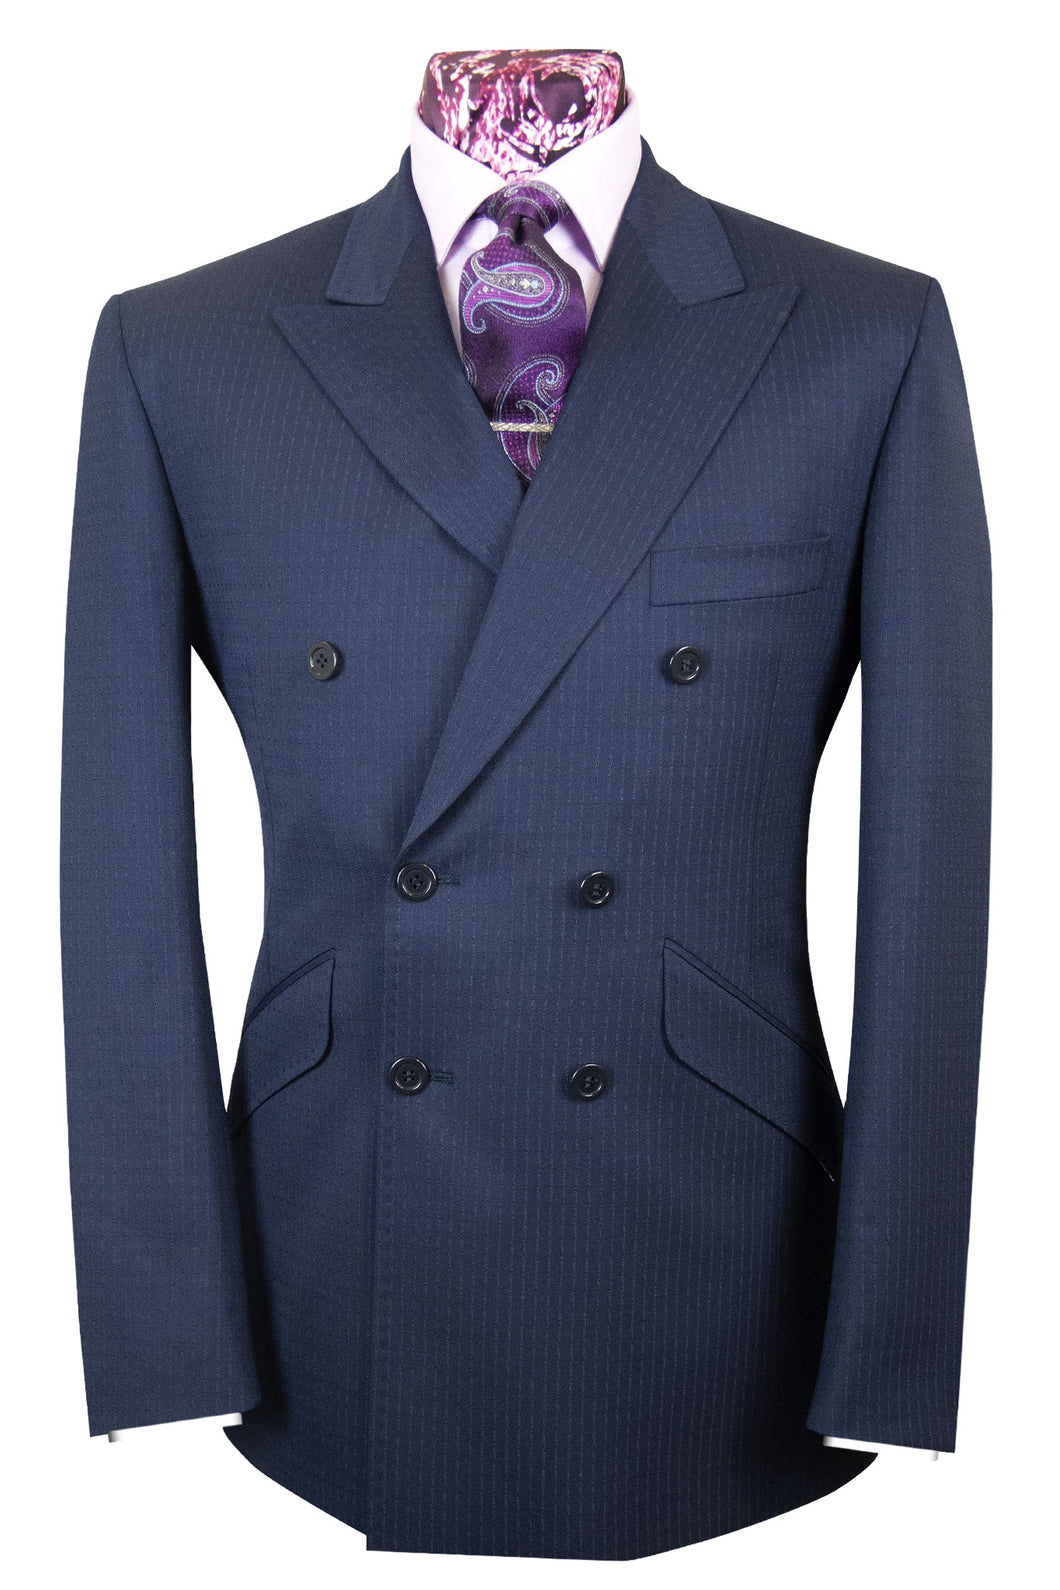 The Winsor Midnight Blue Double Breasted Suit with Stripes